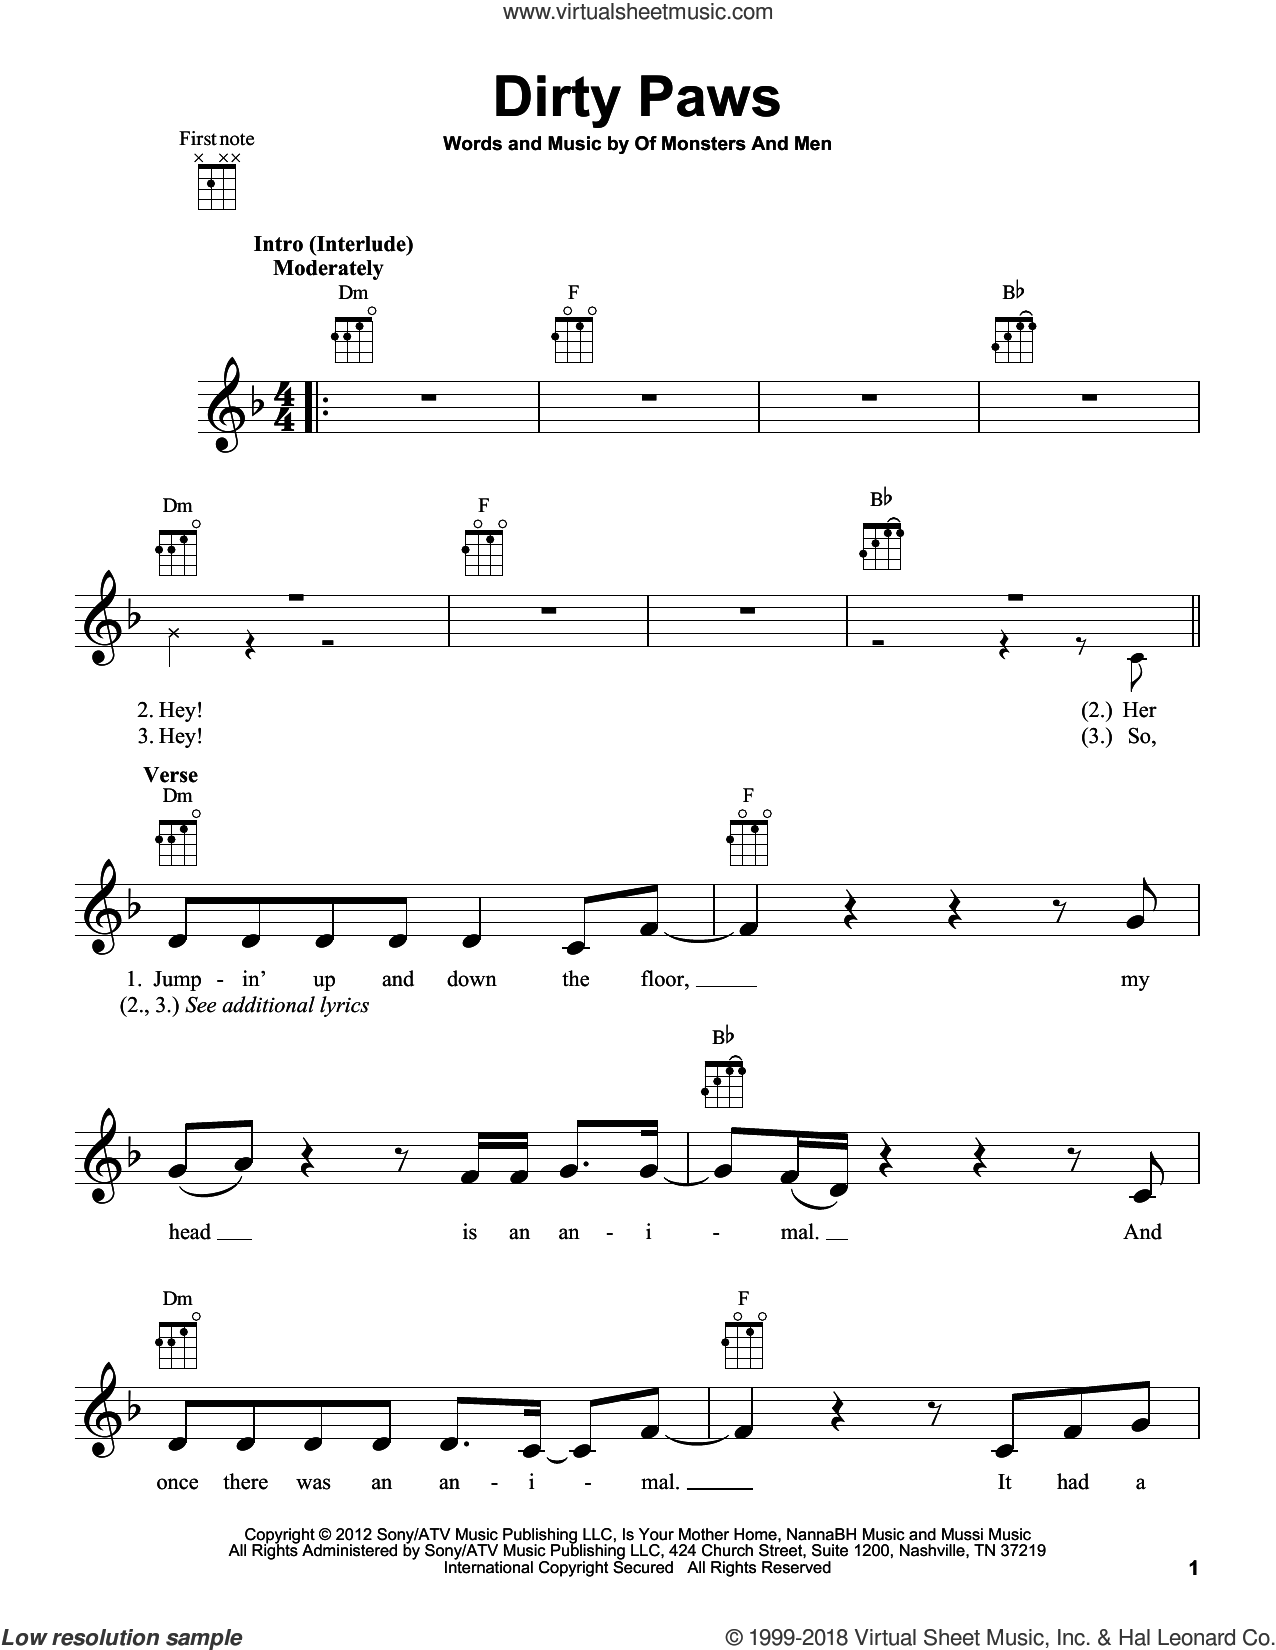 Dirty Paws sheet music for ukulele by Of Monsters And Men. Score Image Preview.